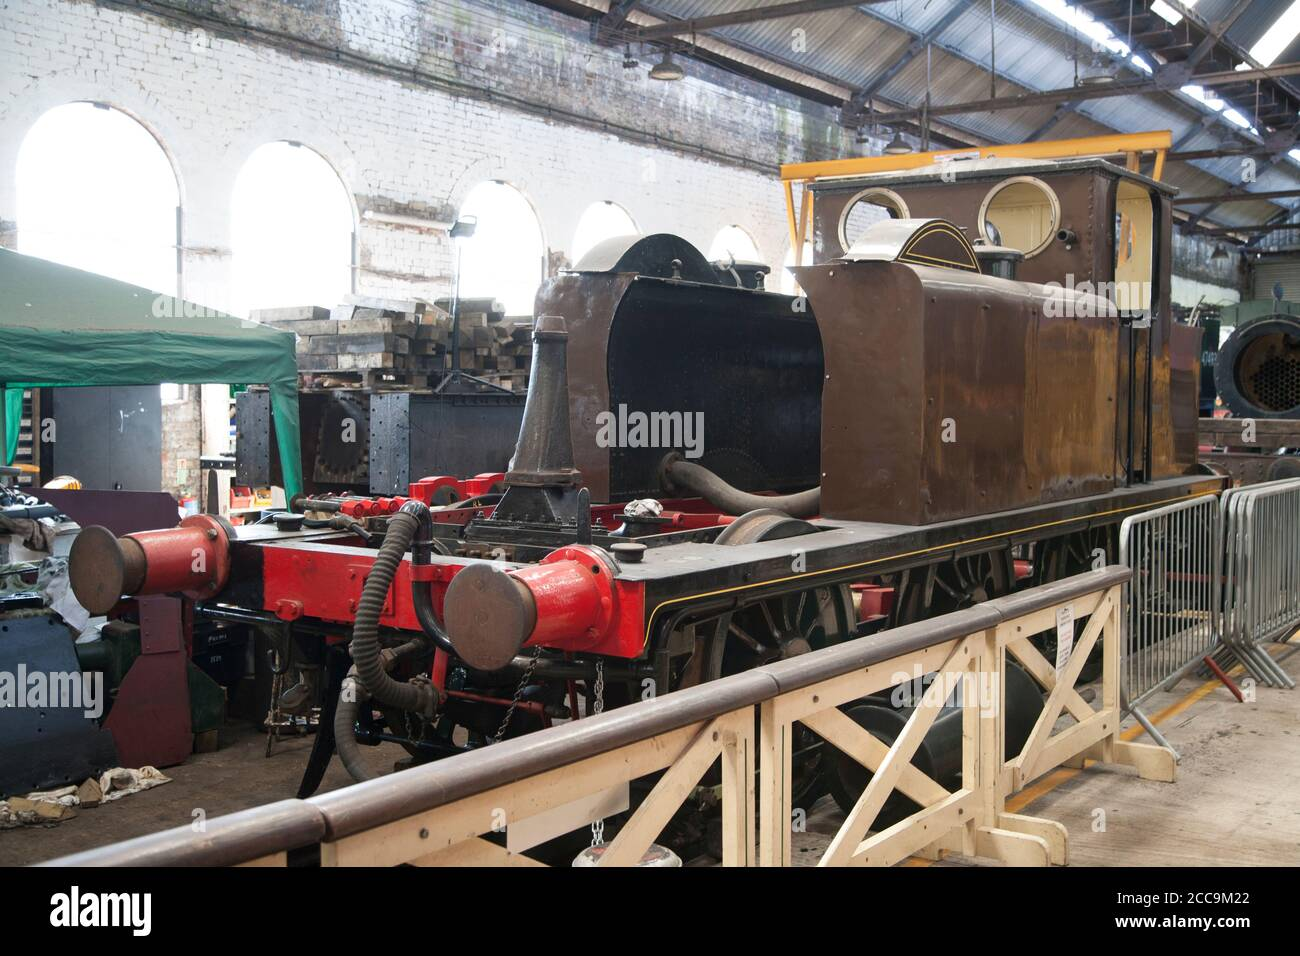 LB&sCR A1 Class A1/X Locomotive under restoration in the workshop at the Spa Valley Railway Kent ( August 2020 ) The London, Brighton and South Coast Stock Photo